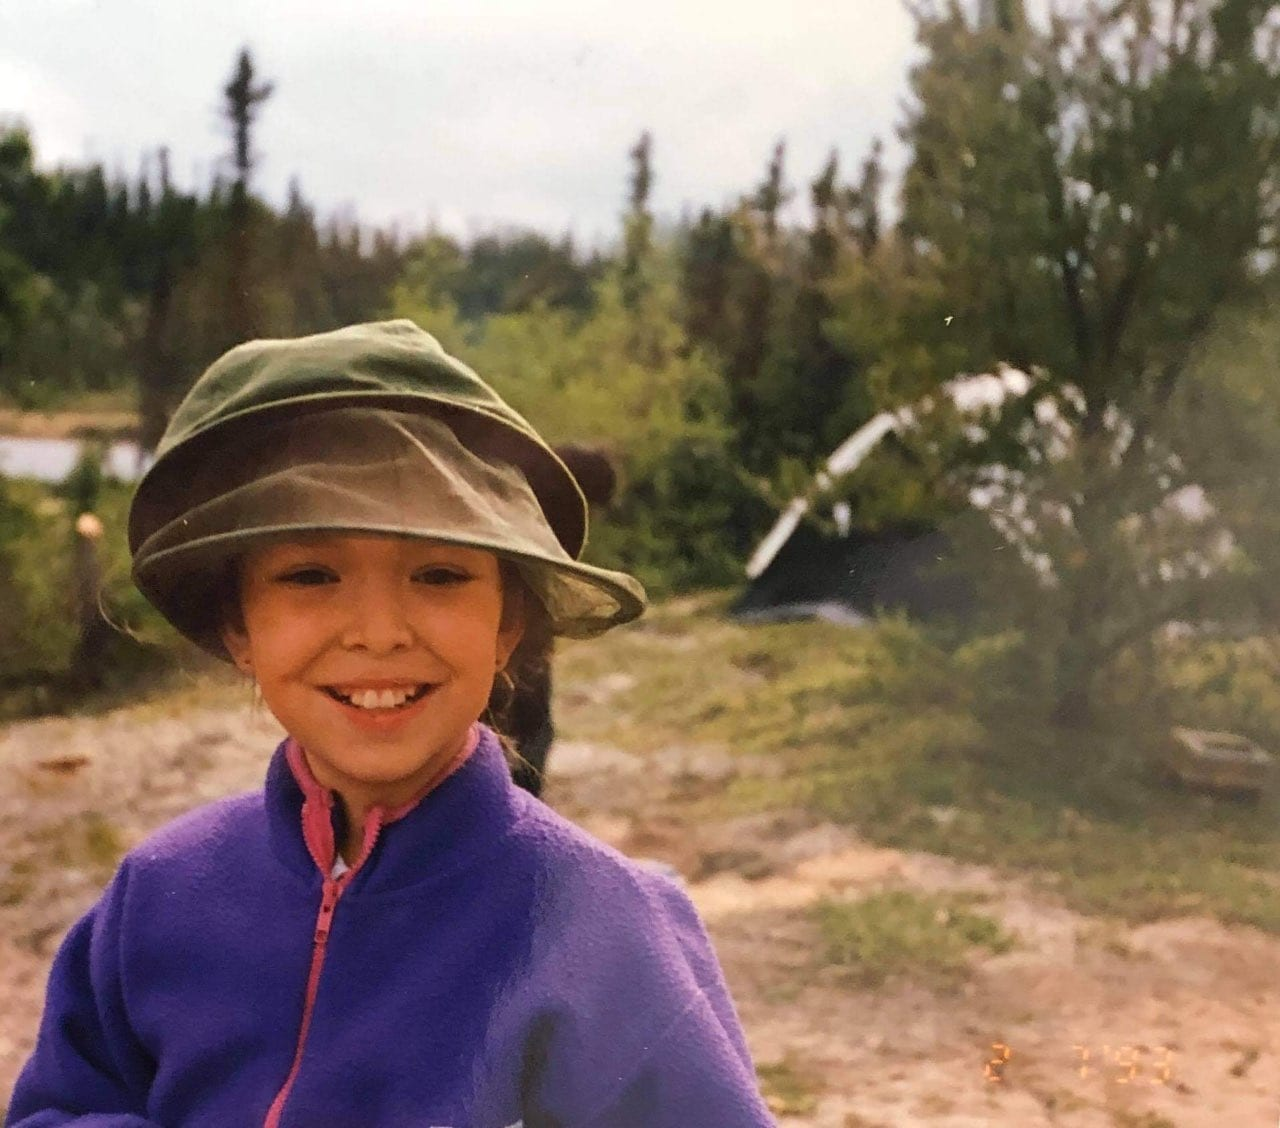 Young Stephanie Thorassie standing outside near a campsite